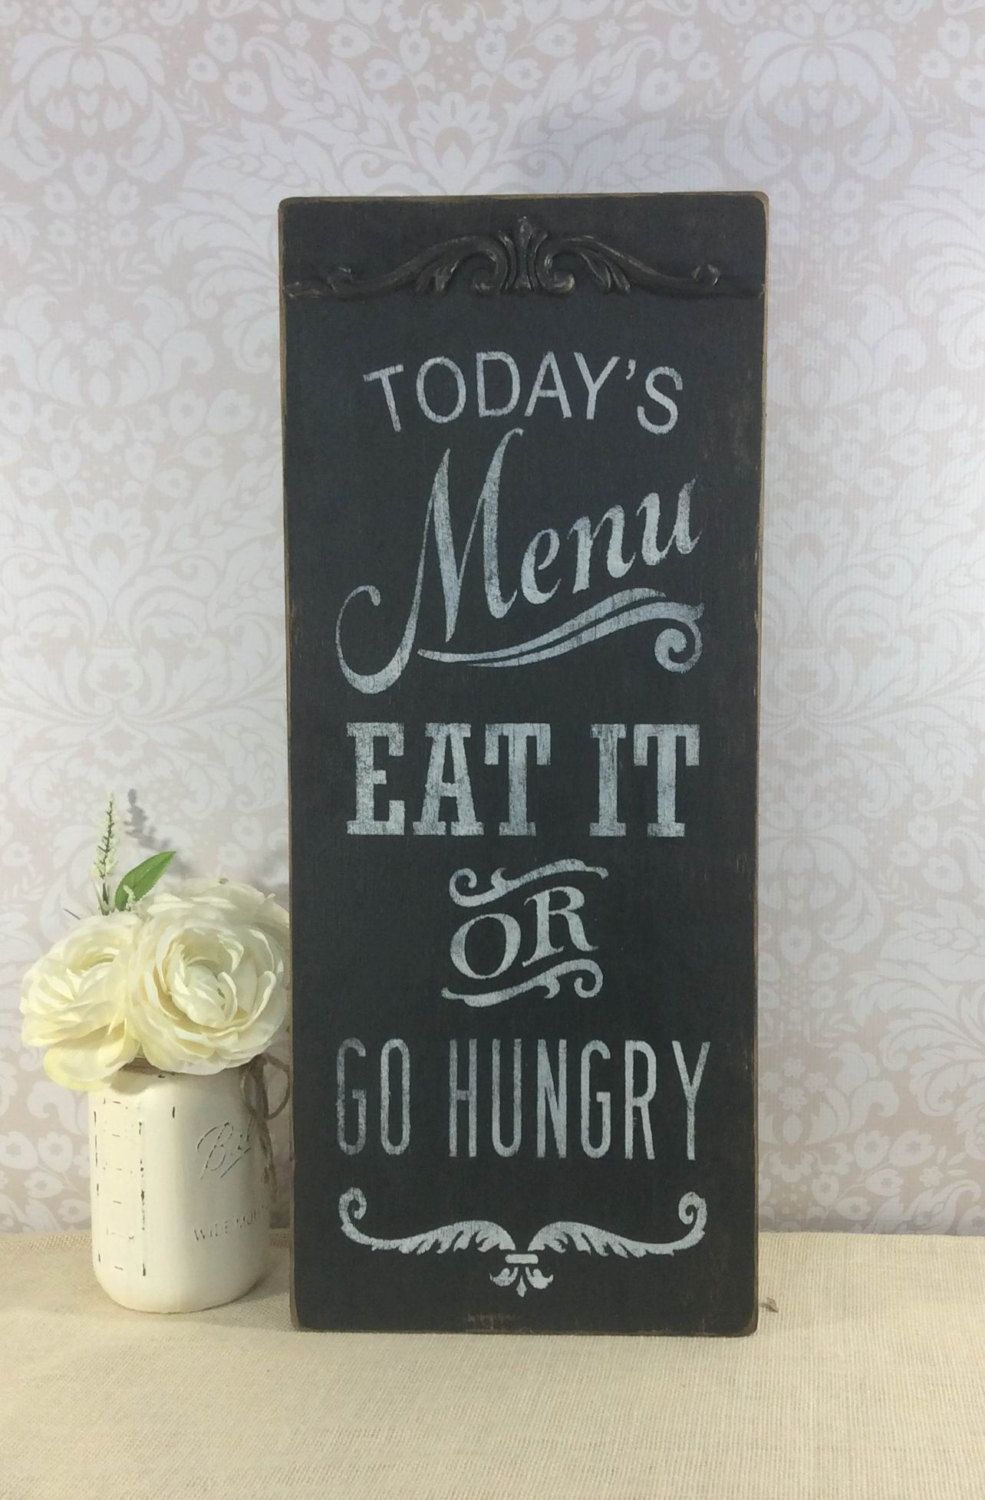 Todays Menu Sign Rustic Chalkboard Look Kitchen Vintage Style Black Distressed Wooden Gift For Cook By SignsByDiane On Etsy